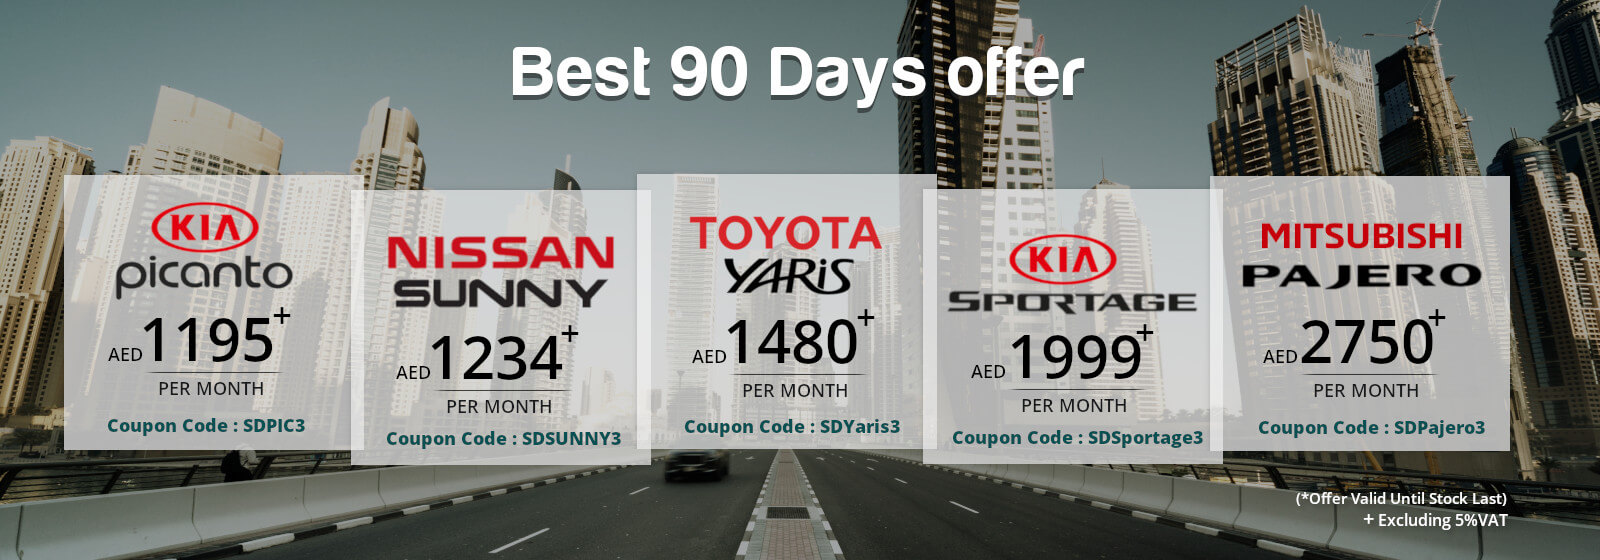 selfdrive.ae : Best 90 Days offer